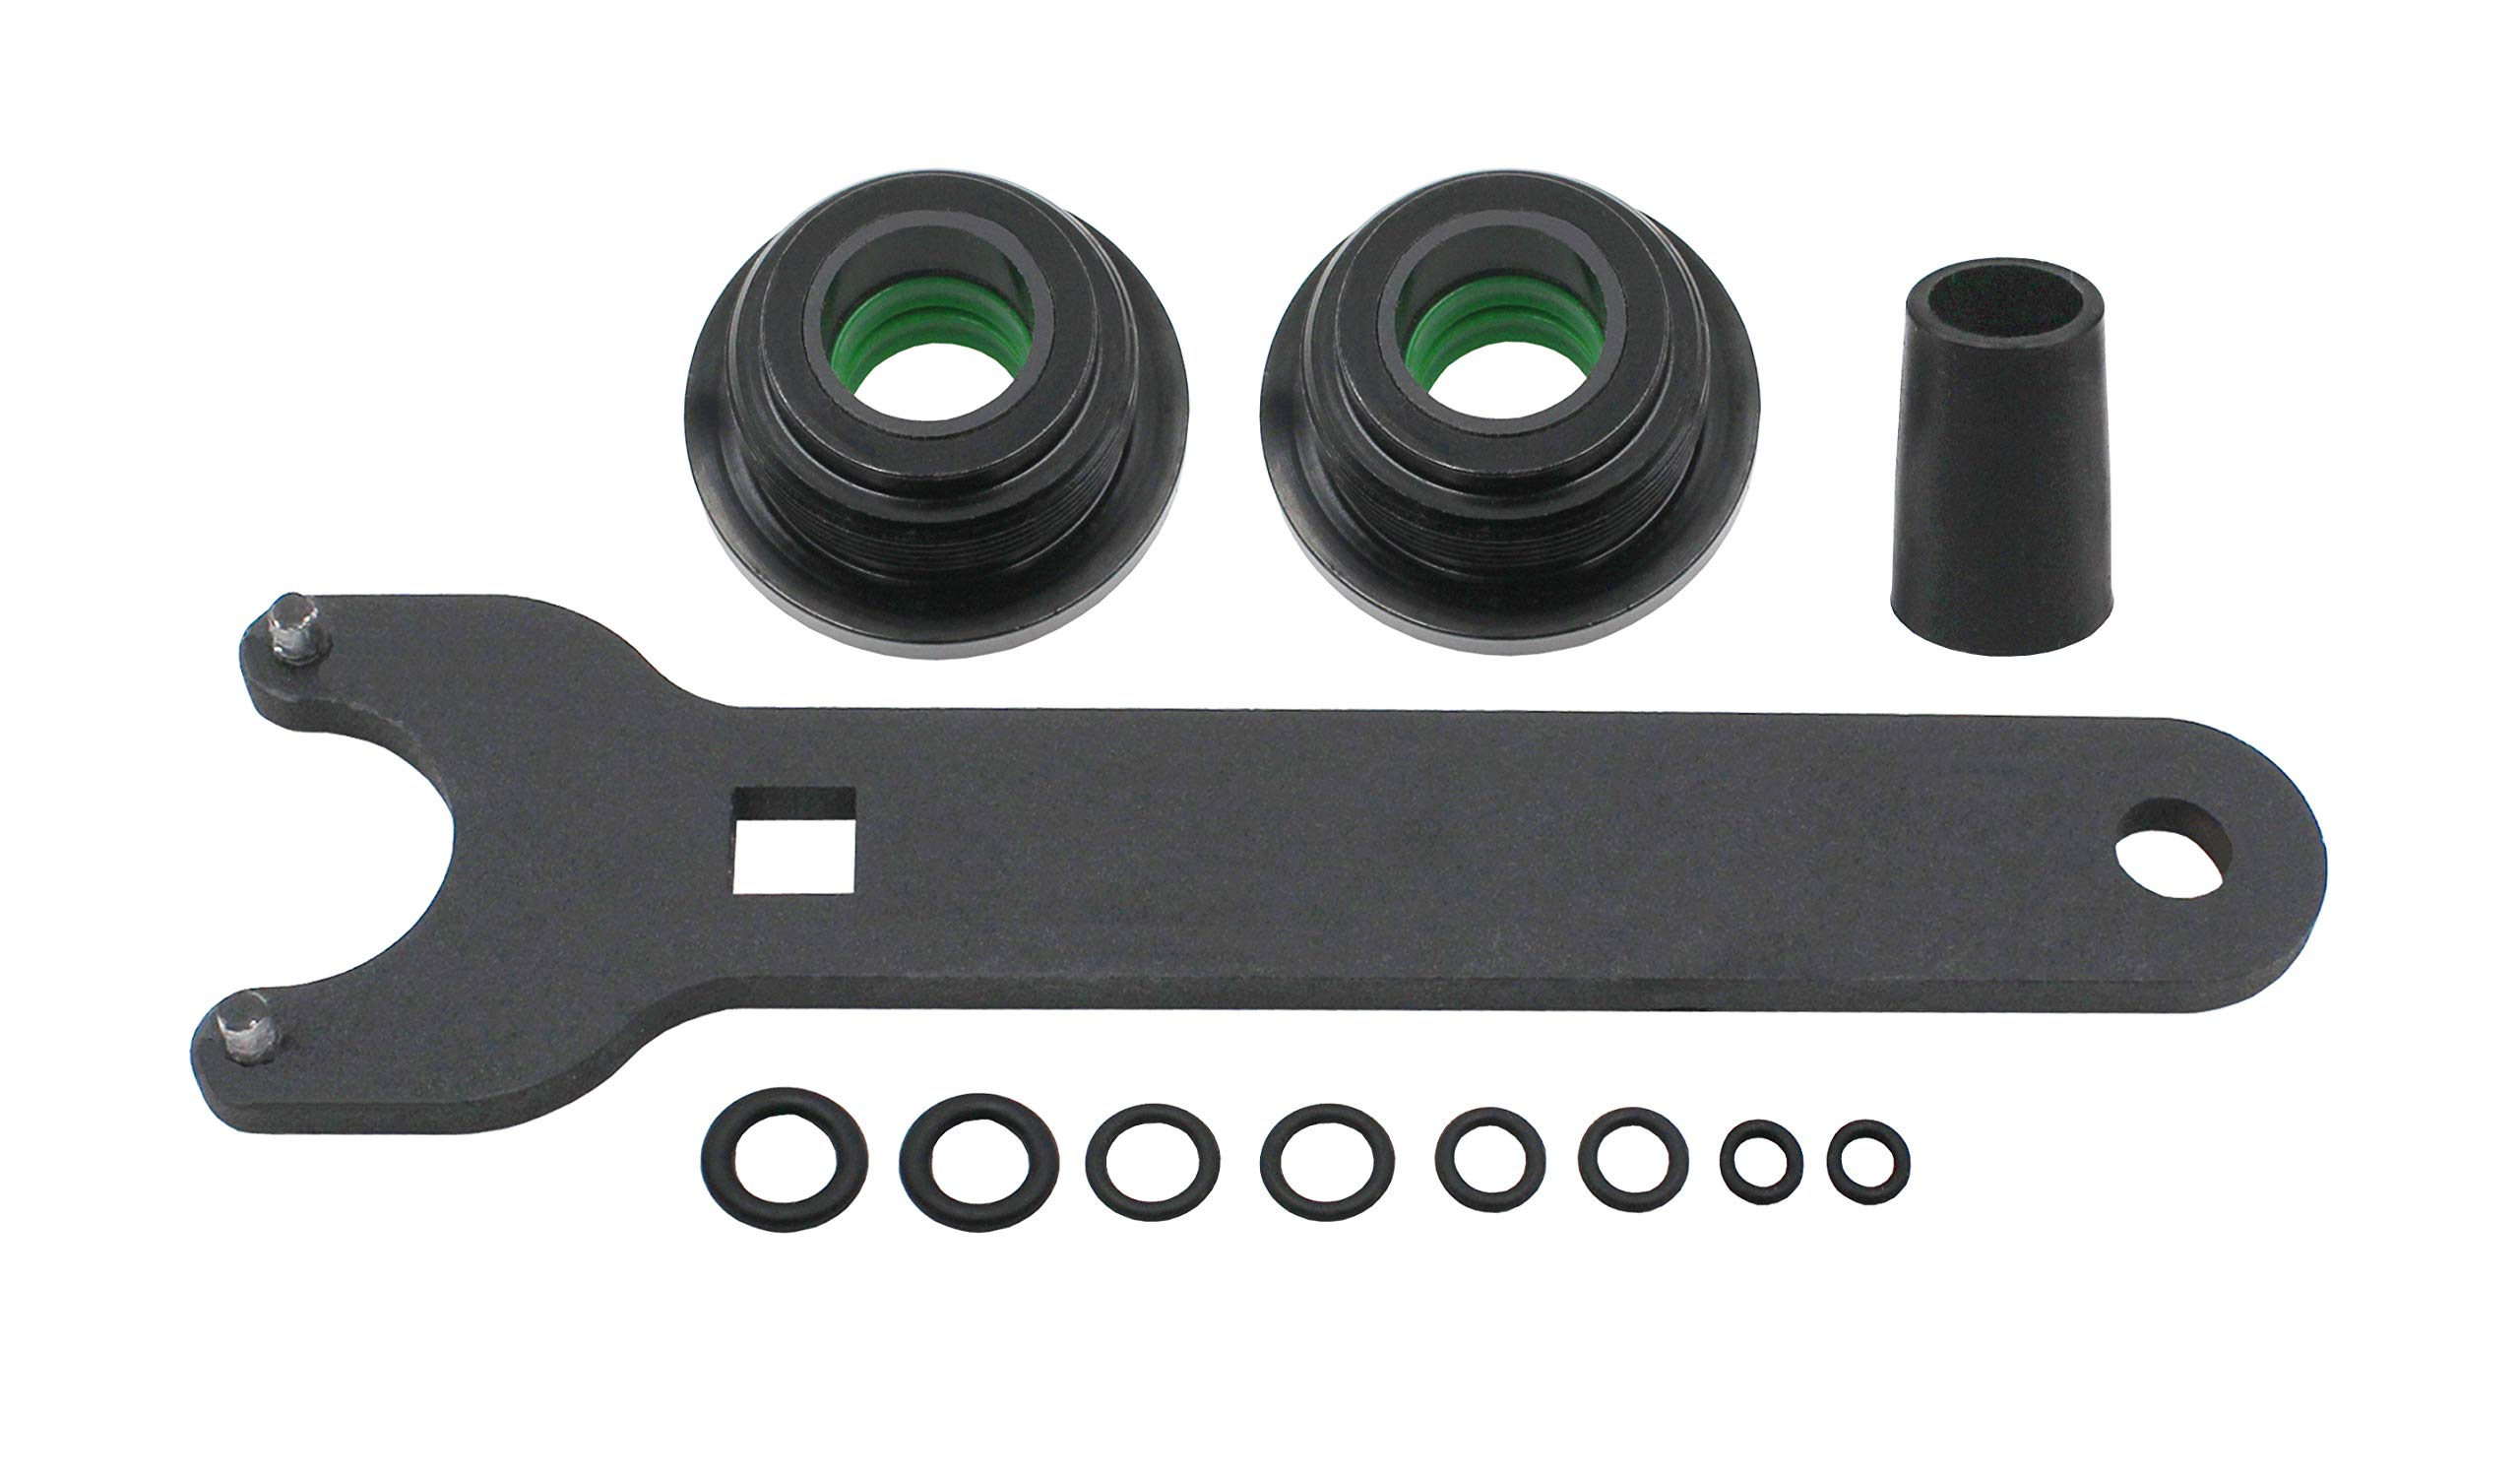 Seal kit replace for seastar for the front of the pivot model #HS5157 Mounting steering cylinder compatible with HC5340, HC5341-HC5348 HC5358 HC5365 HC5375 HC5394 HC5445 HC6750-HC6755. by iFJF